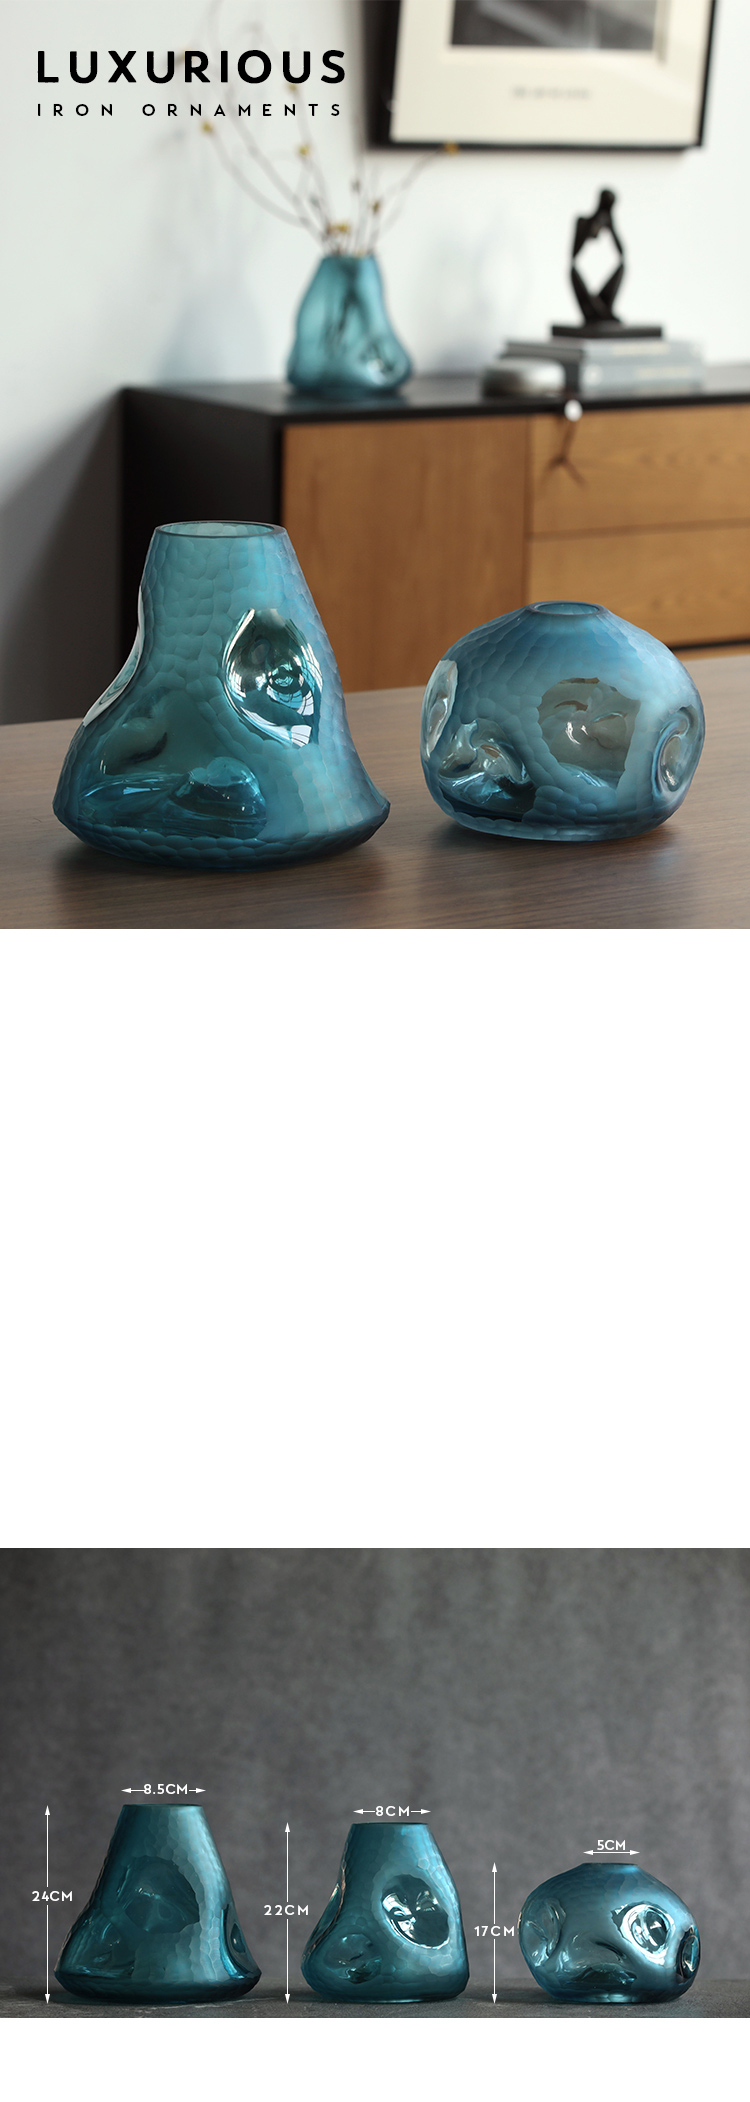 Modern Bizarre Bumpy Shapes Tabletop Vases Creative Blue Glass Ornaments Craft Glass Vase For Home Hotel Desktop Accessories